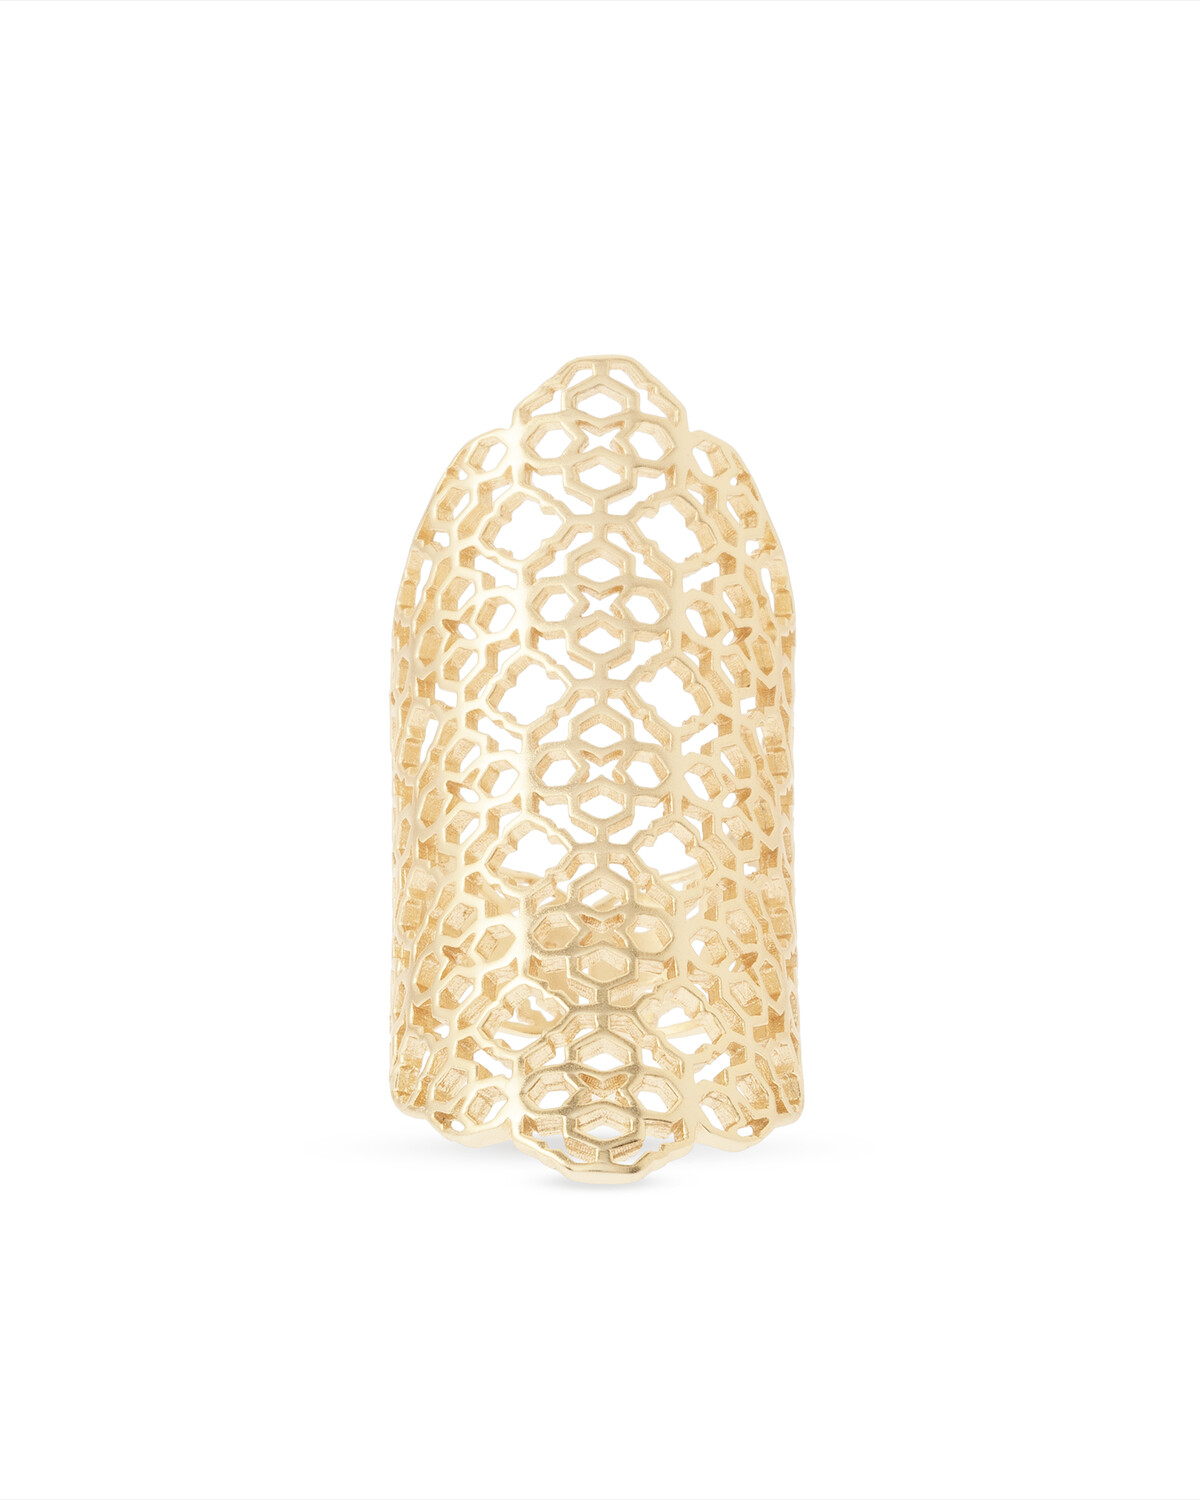 Kendra Scott Boone Cocktail Ring in Gold